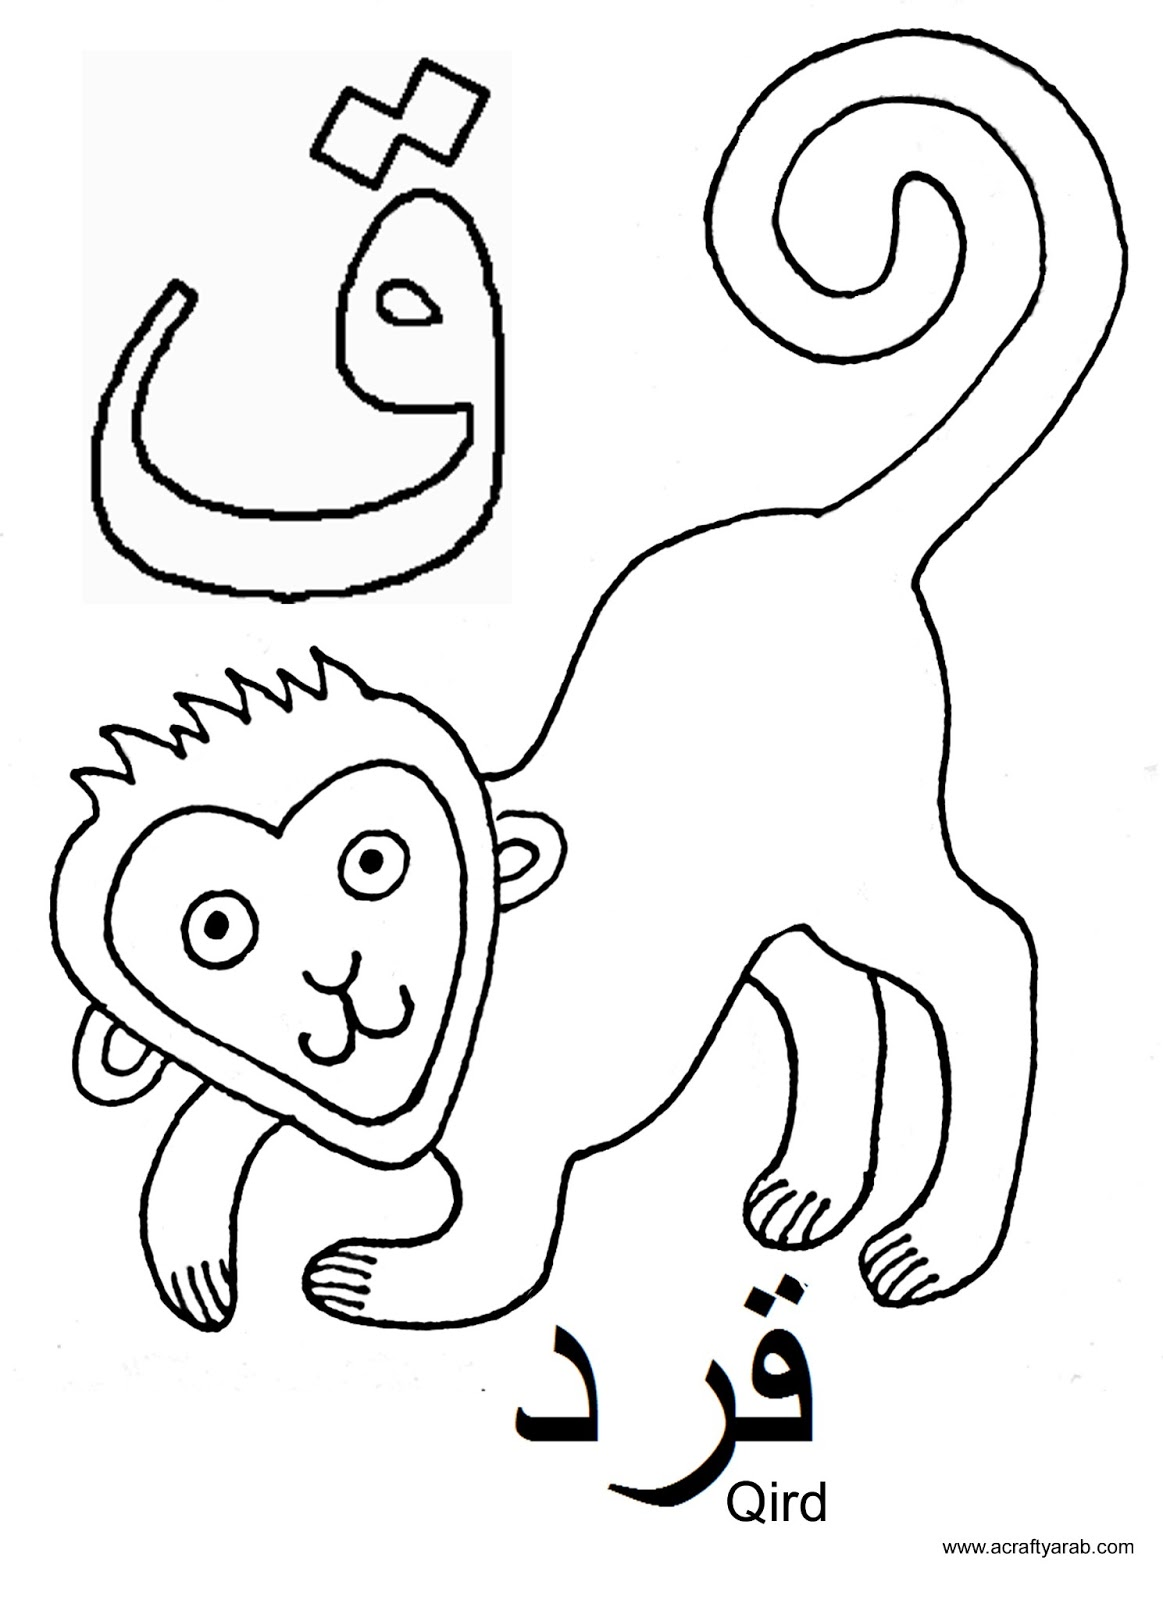 A Crafty Arab Arabic Alphabet Coloring Pages F Is For